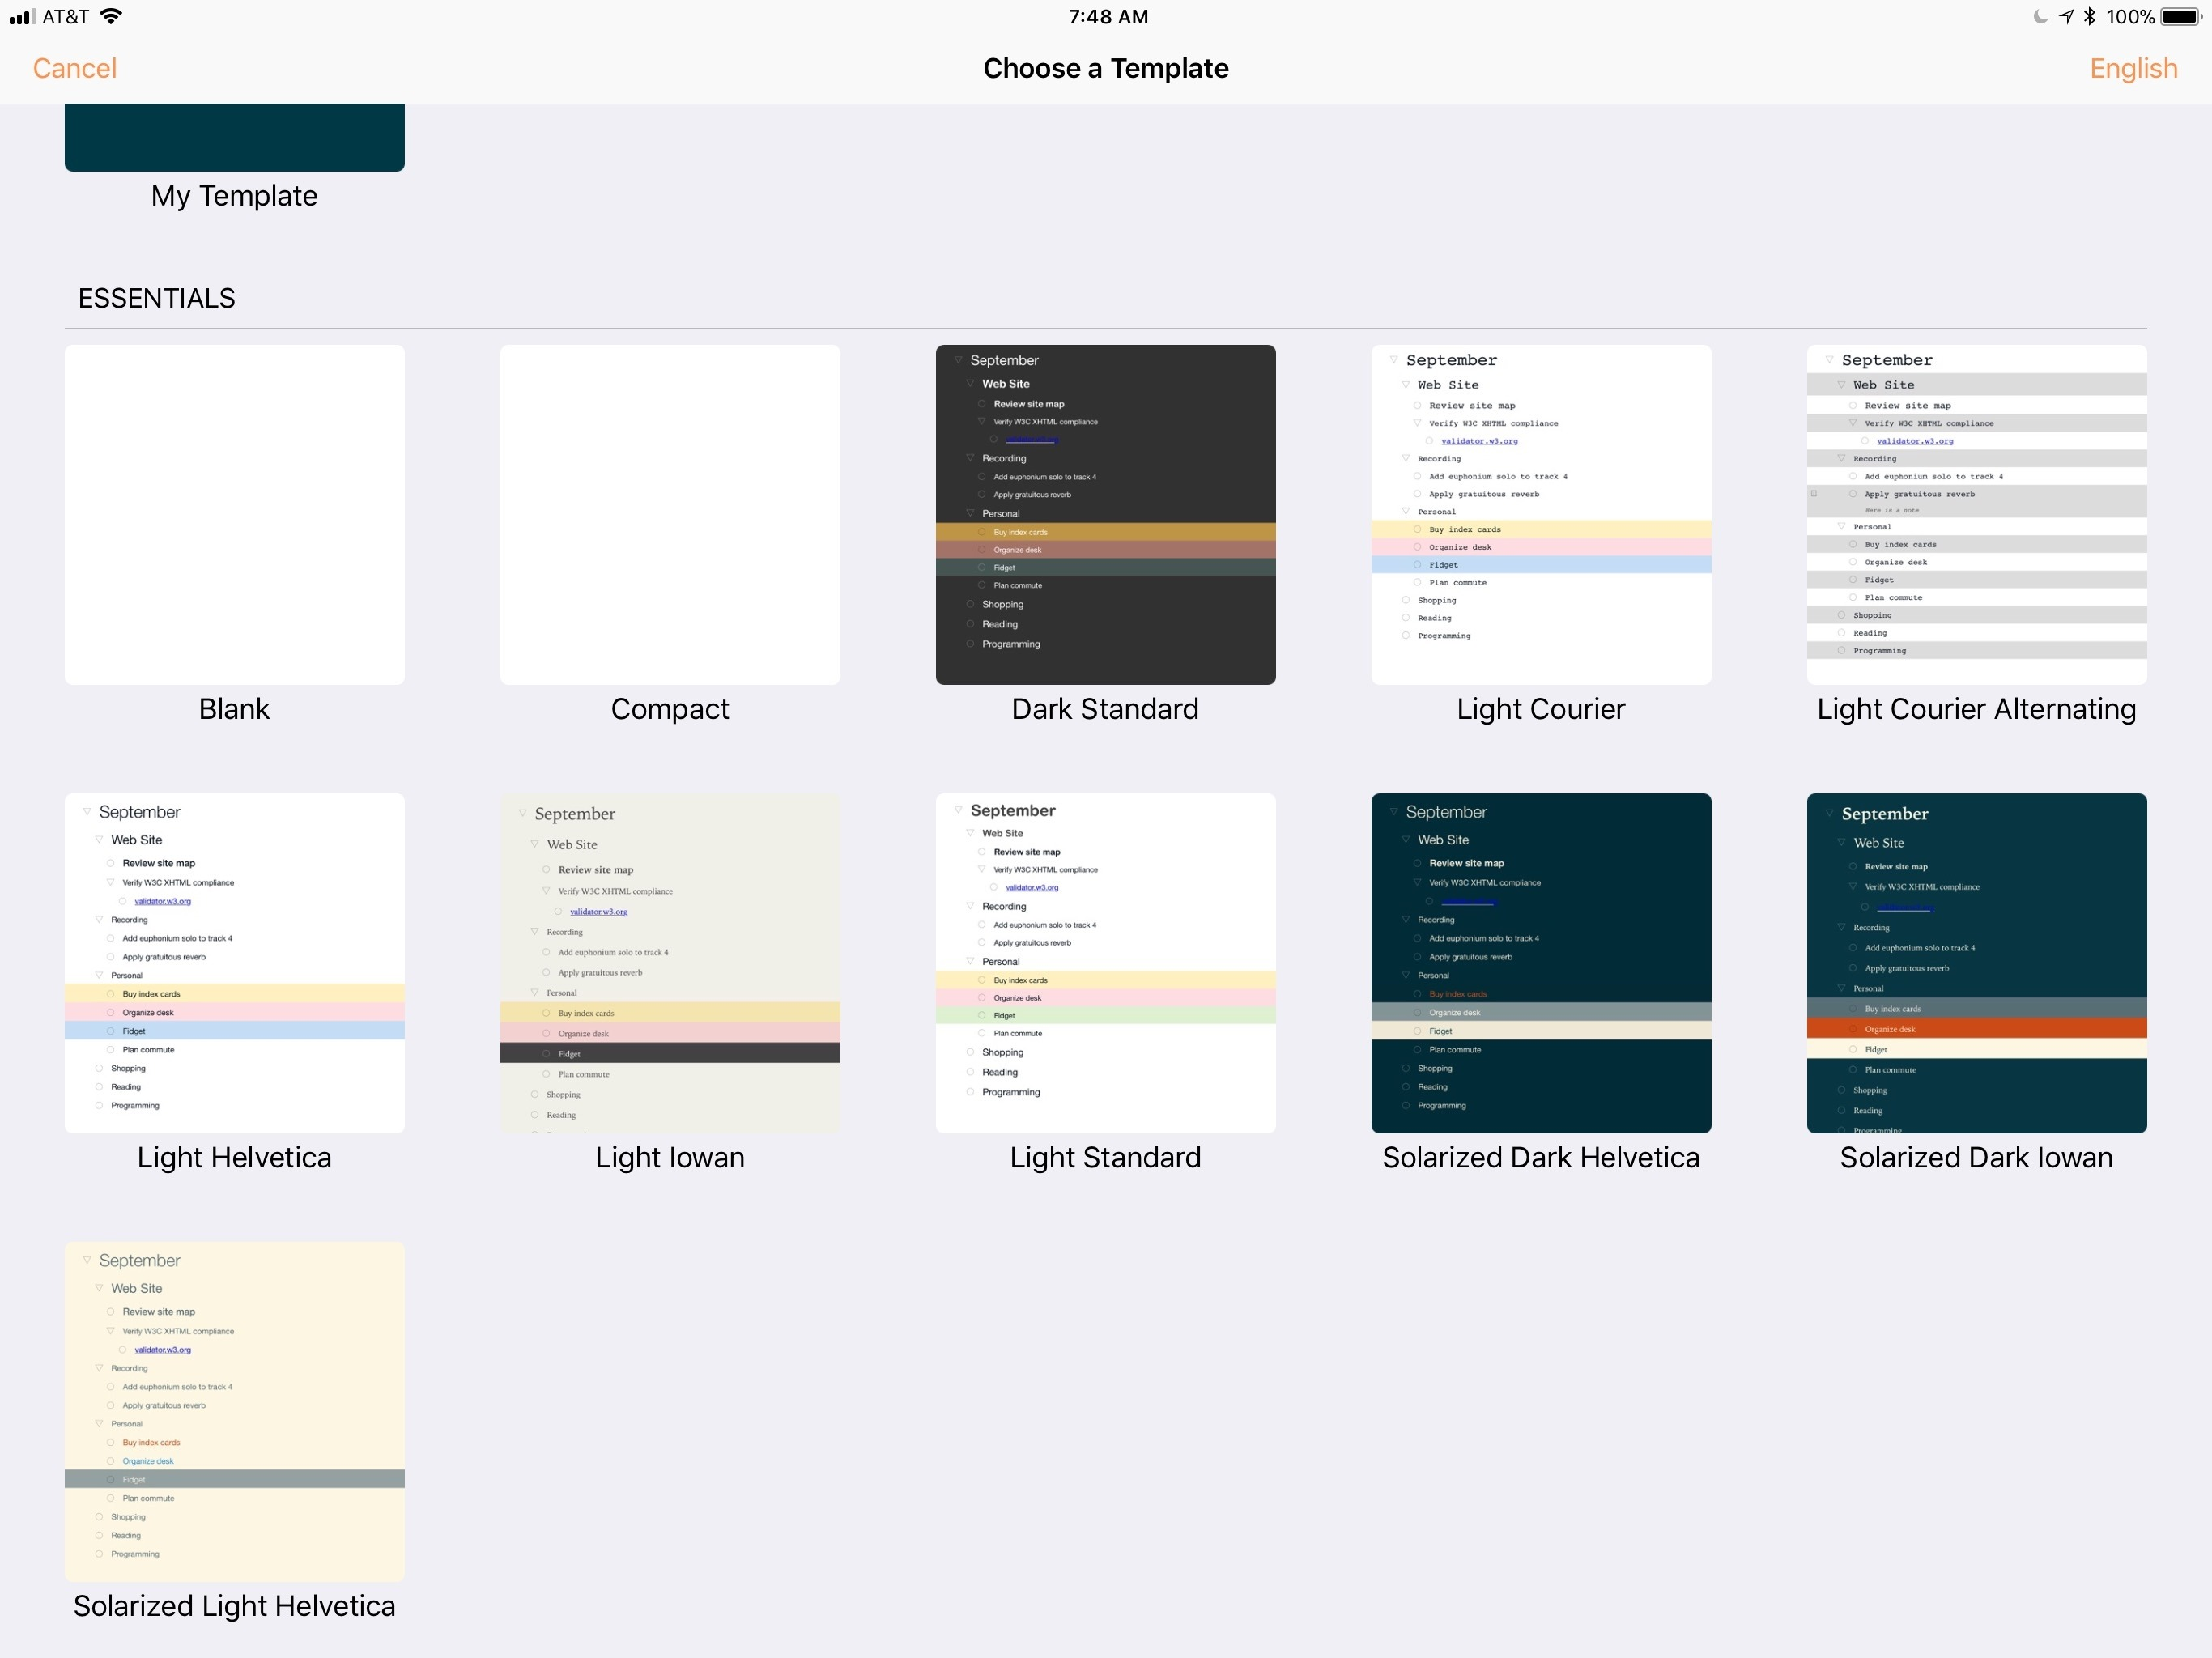 OmniOutliner's Themes